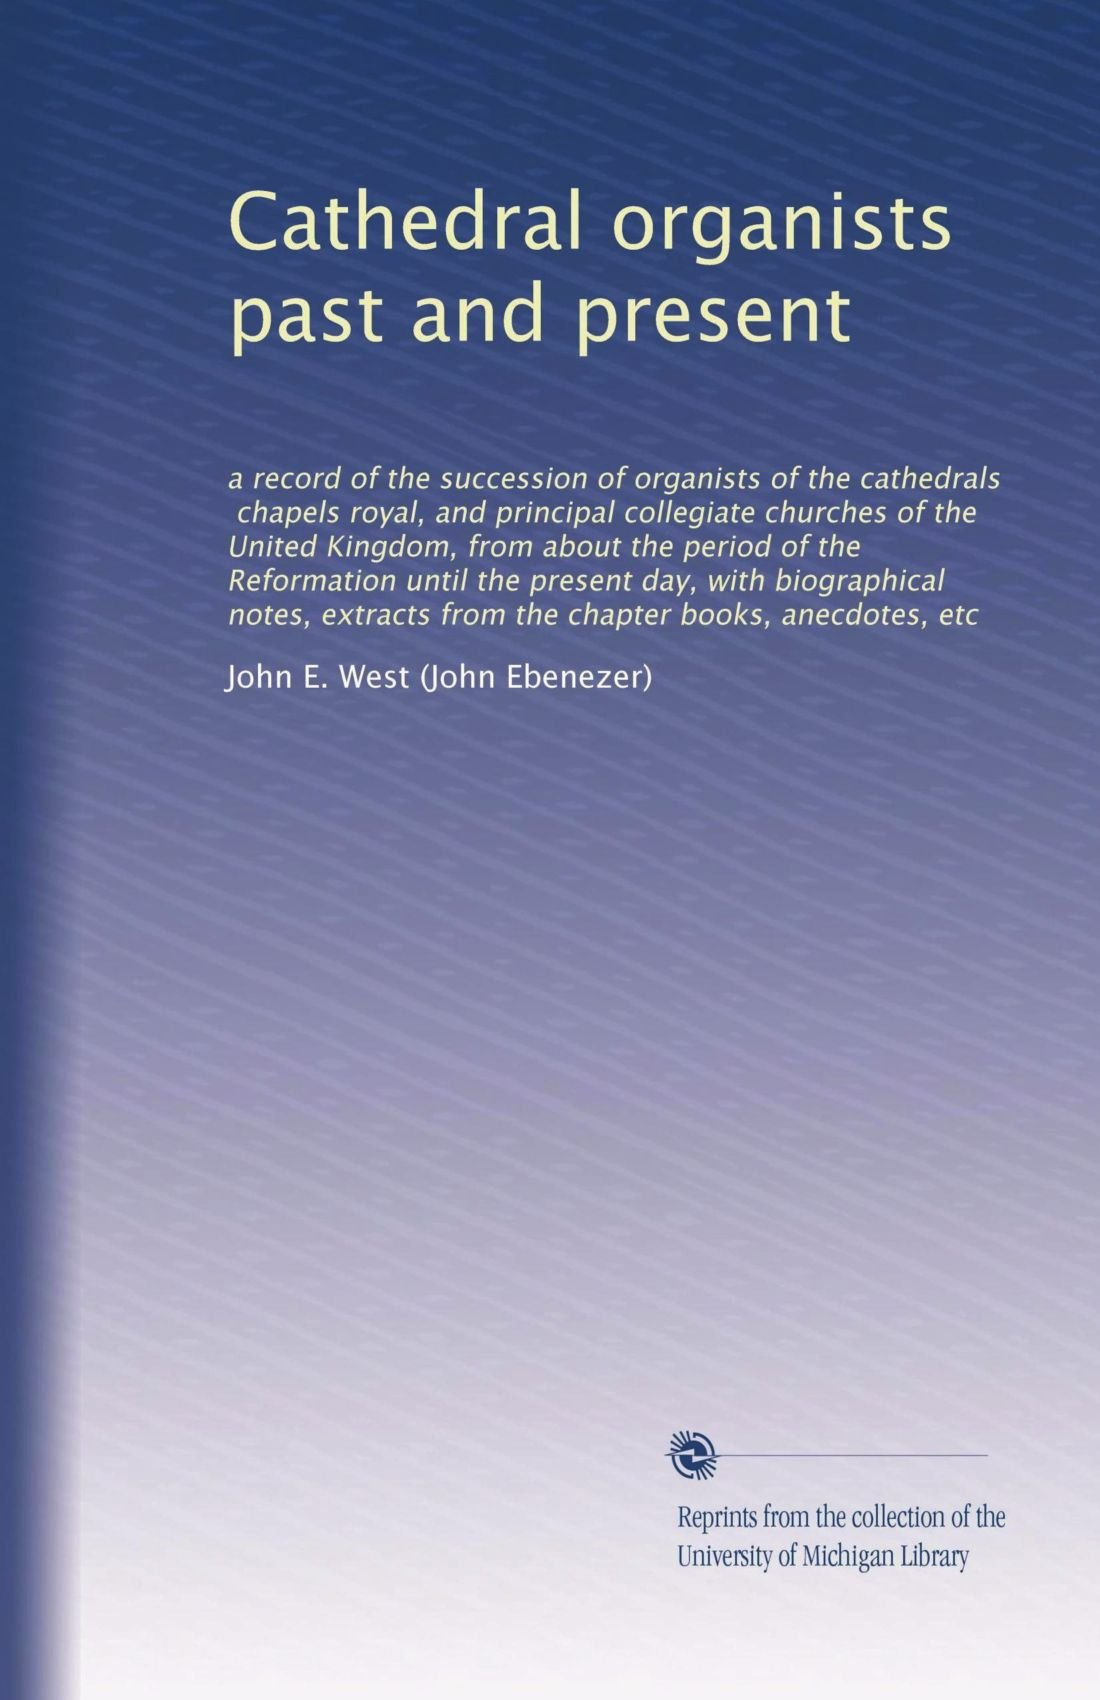 Cathedral organists past and present: a record of the succession of organists of the cathedrals, chapels royal, and principal collegiate churches of ... notes, extracts from the chapter... PDF